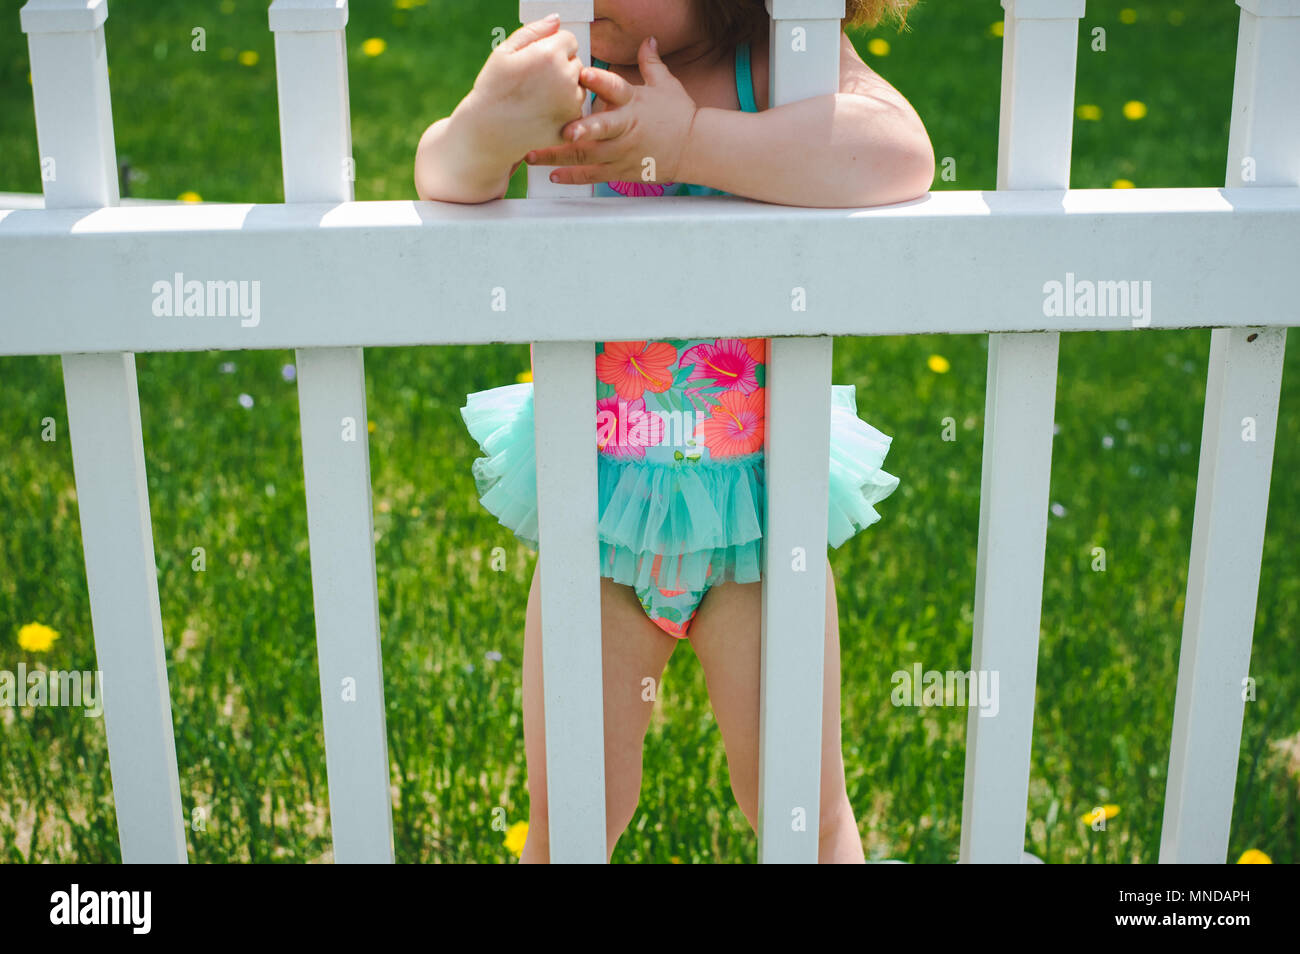 A faceless toddler girl wearing a bright colored bathing suit with flowers on it. - Stock Image